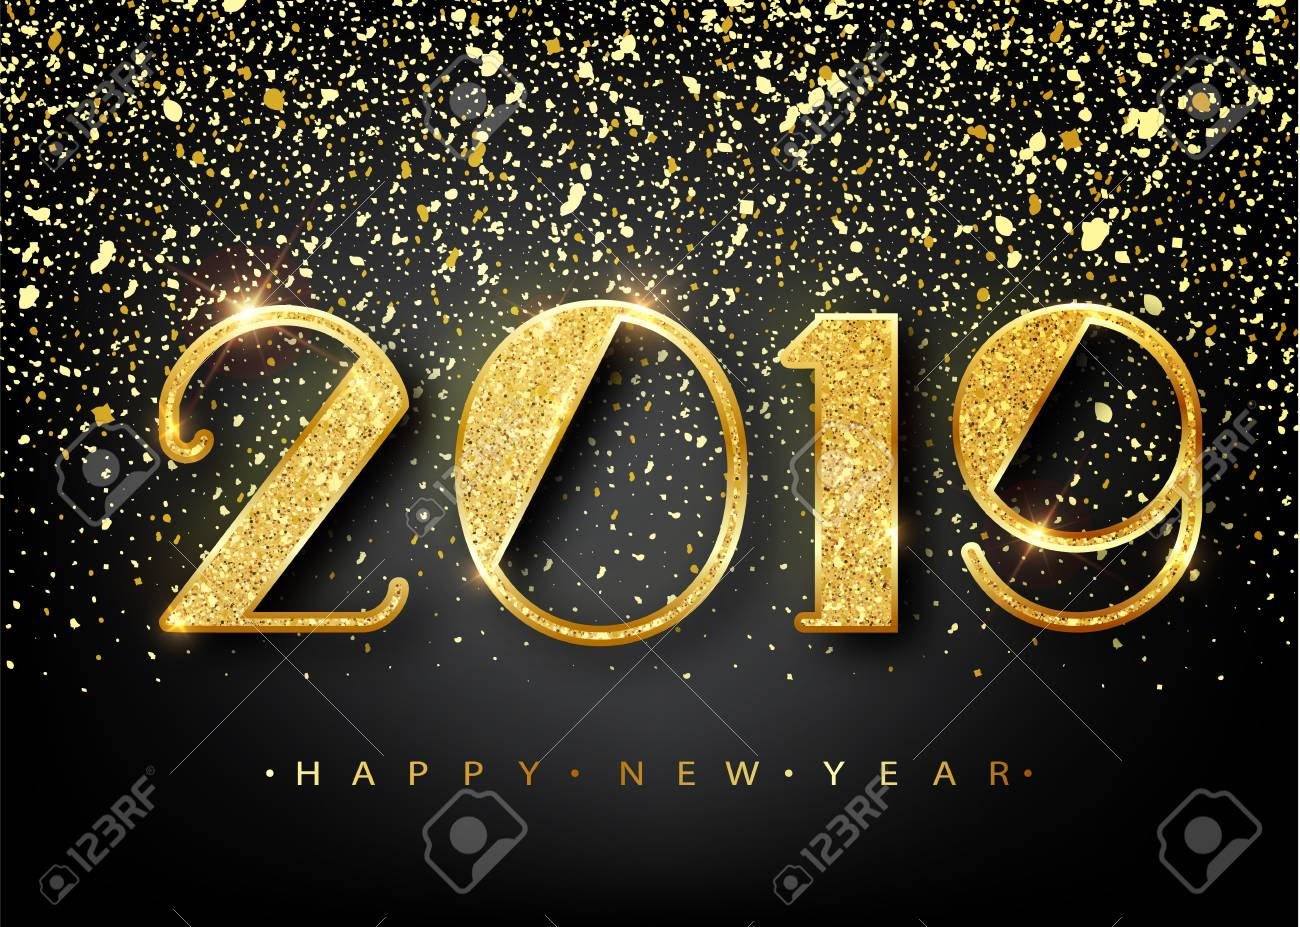 2019 Happy new year. Gold Numbers Design of greeting card. Gold Shining Pattern. Happy New Year Banner with 2019 Numbers on Bright Background. Vector illustration. - 98120019